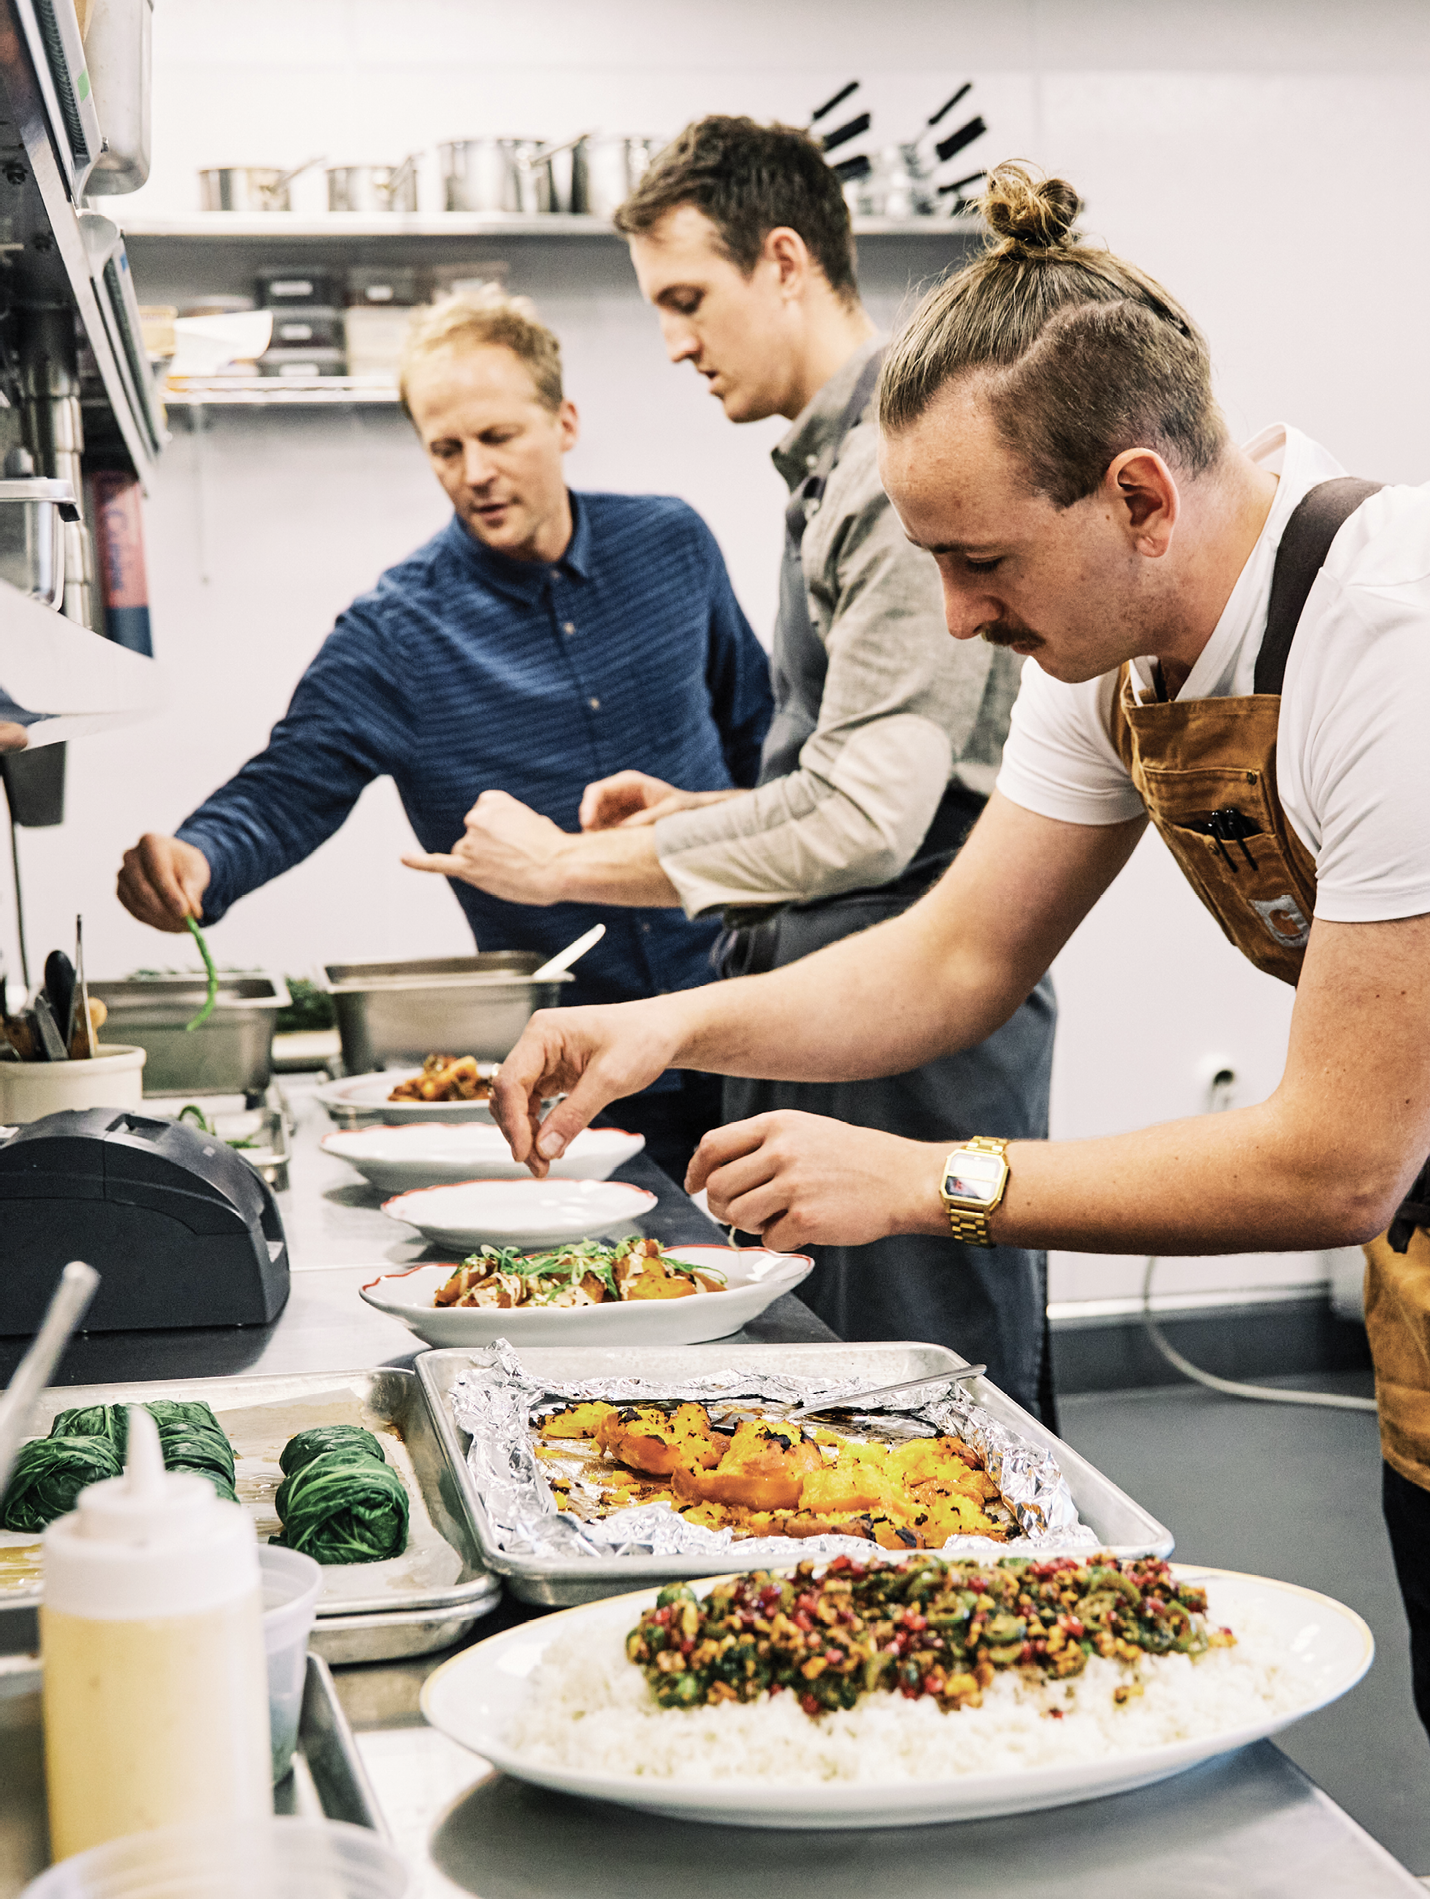 The chefs at Basic Kitchen (Charles Layton, right) and Post House (Evan Gaudreau, center) have their own culinary styles, yet both are aligned with Ben's focus on elevating fresh, wholesome ingredients.